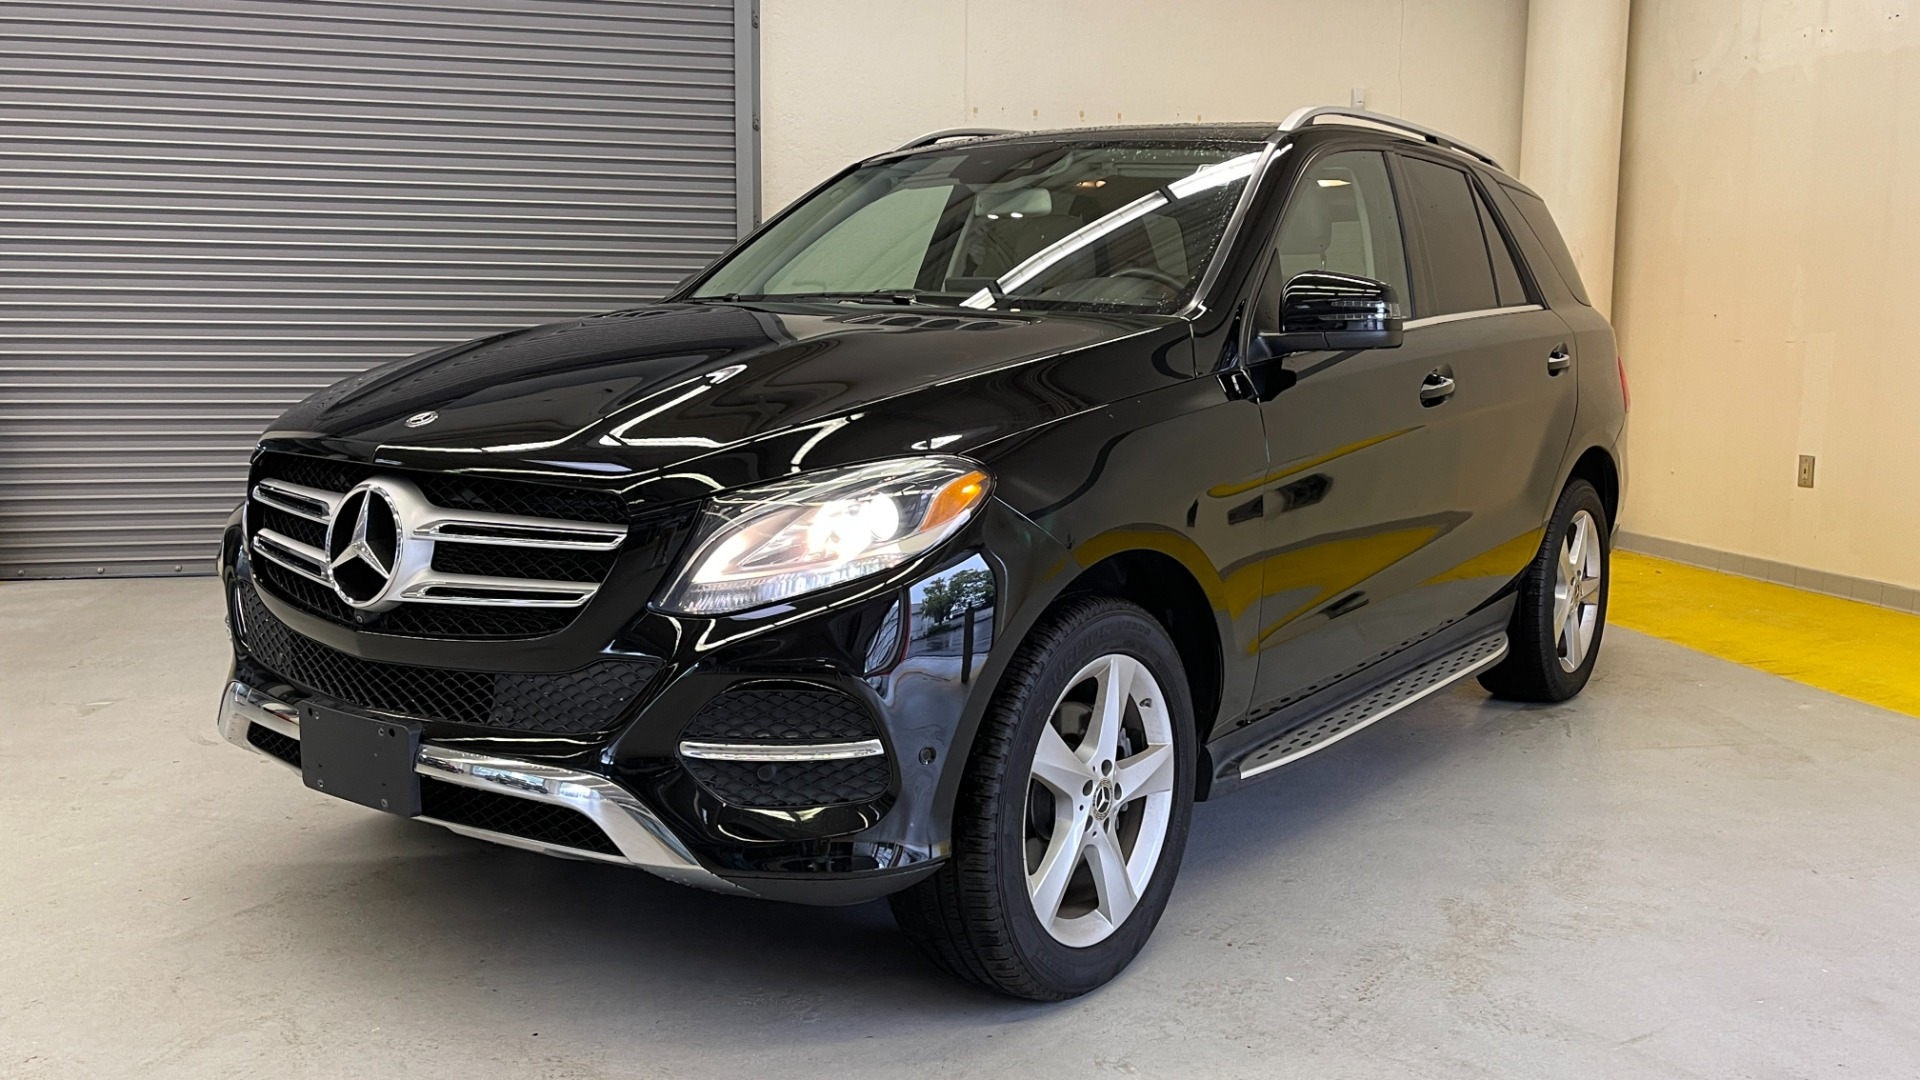 Used 2018 Mercedes-Benz GLE 350 4MATIC PREMIUM / NAV / PARK PILOT / BSA / H/K SND / SURROUND VIEW for sale $40,995 at Formula Imports in Charlotte NC 28227 3